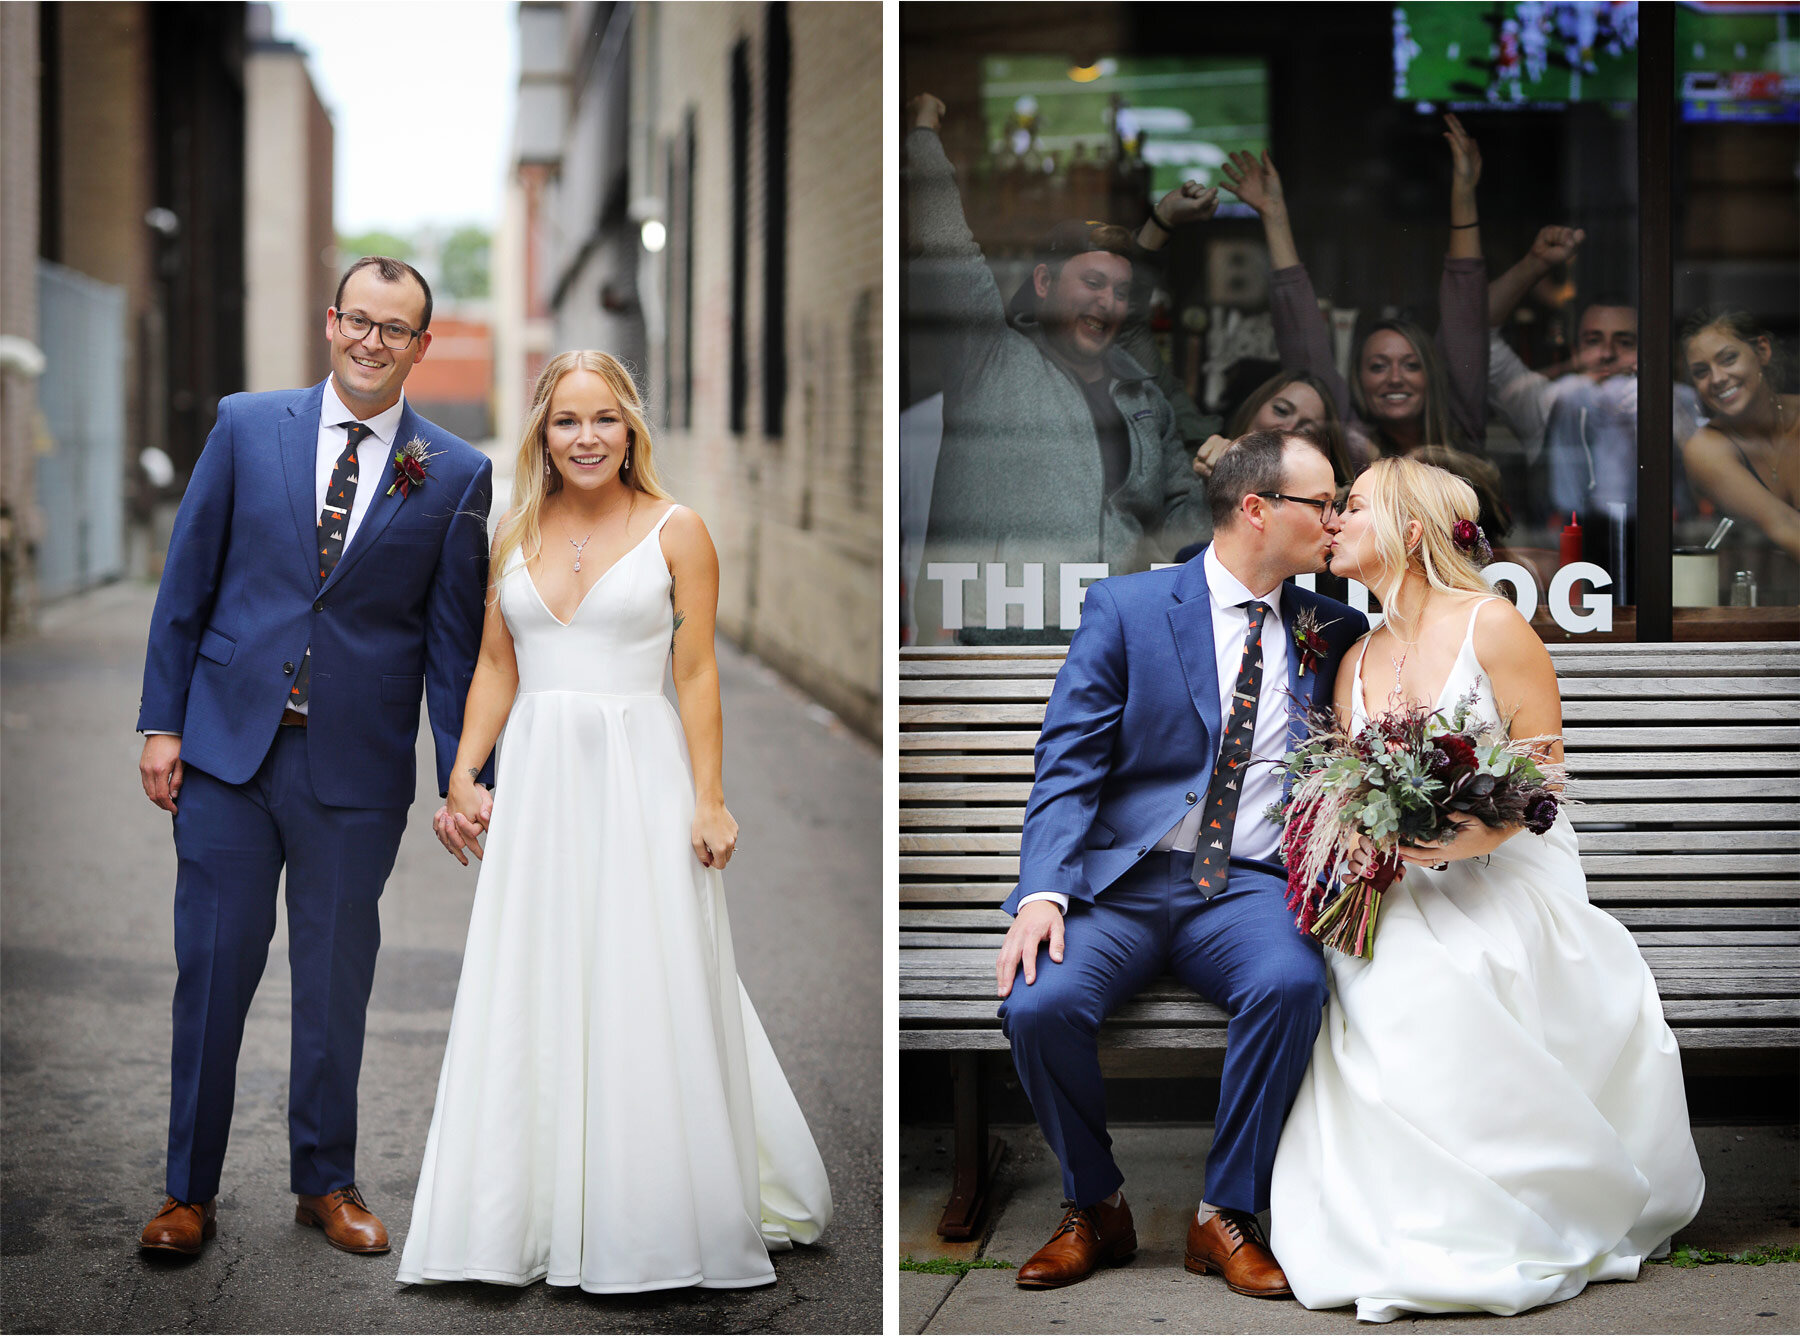 04-Vick-Photography-Wedding-Minneapolis-Minnesota-Downtown-Alley-Groom-First-Look-Danielle-and-Tom.jpg